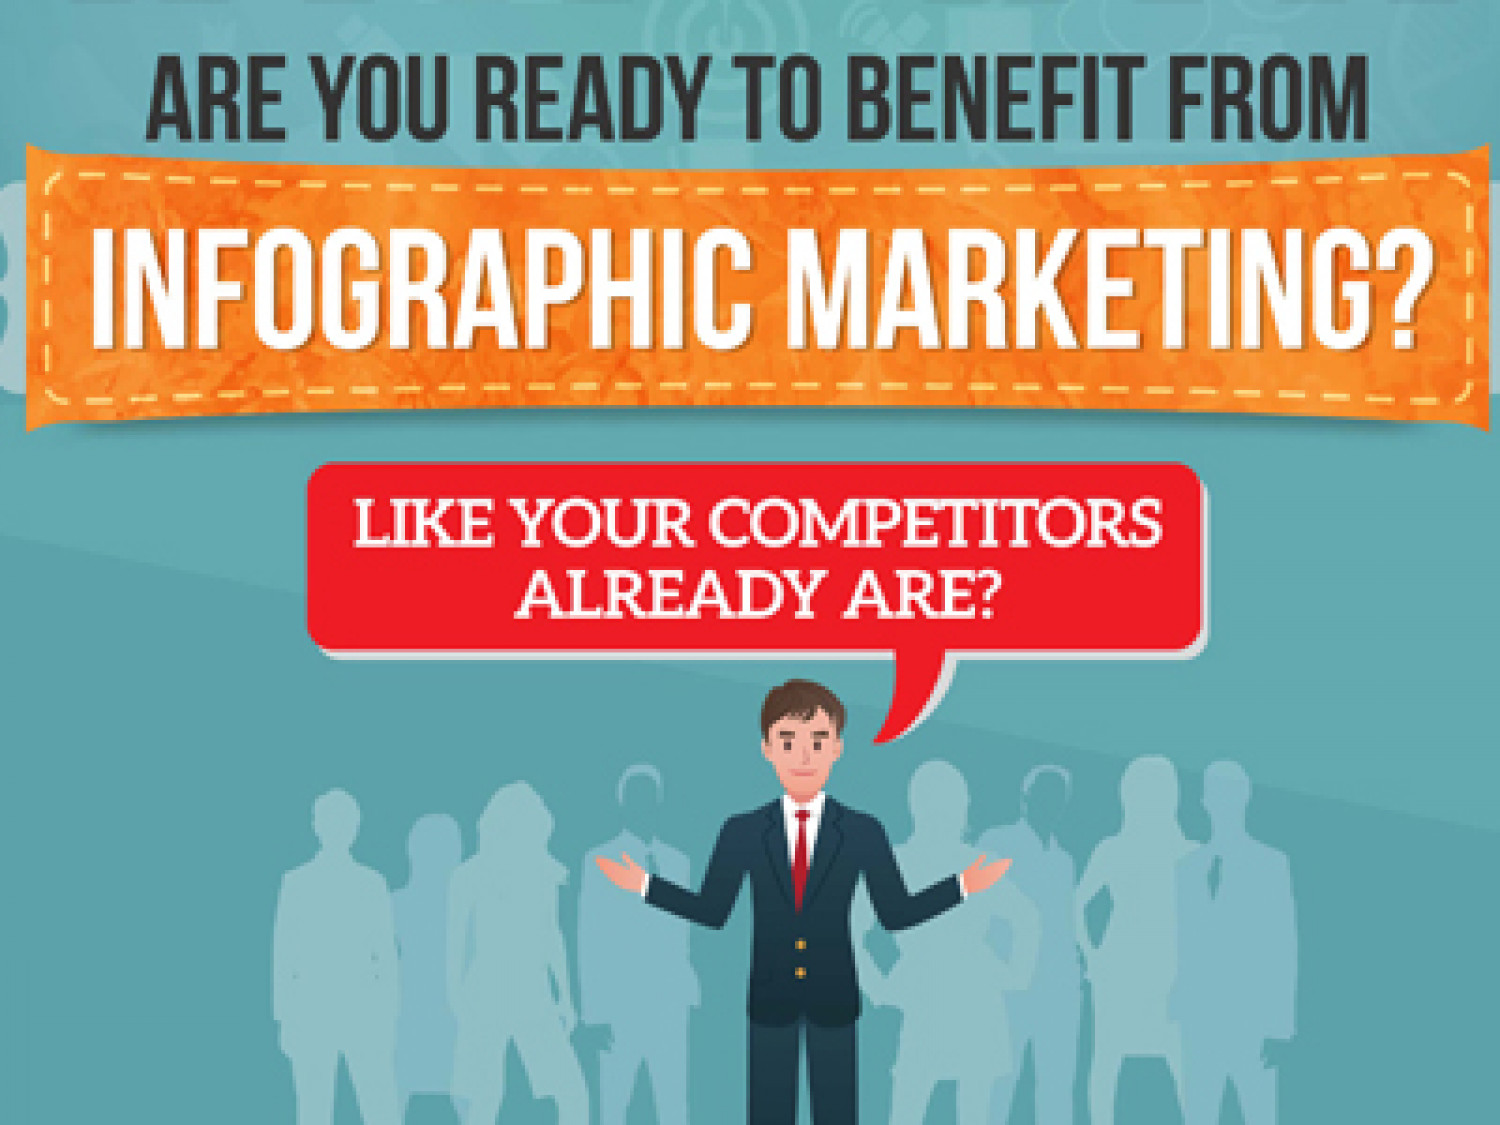 Infographic Marketing Infographic